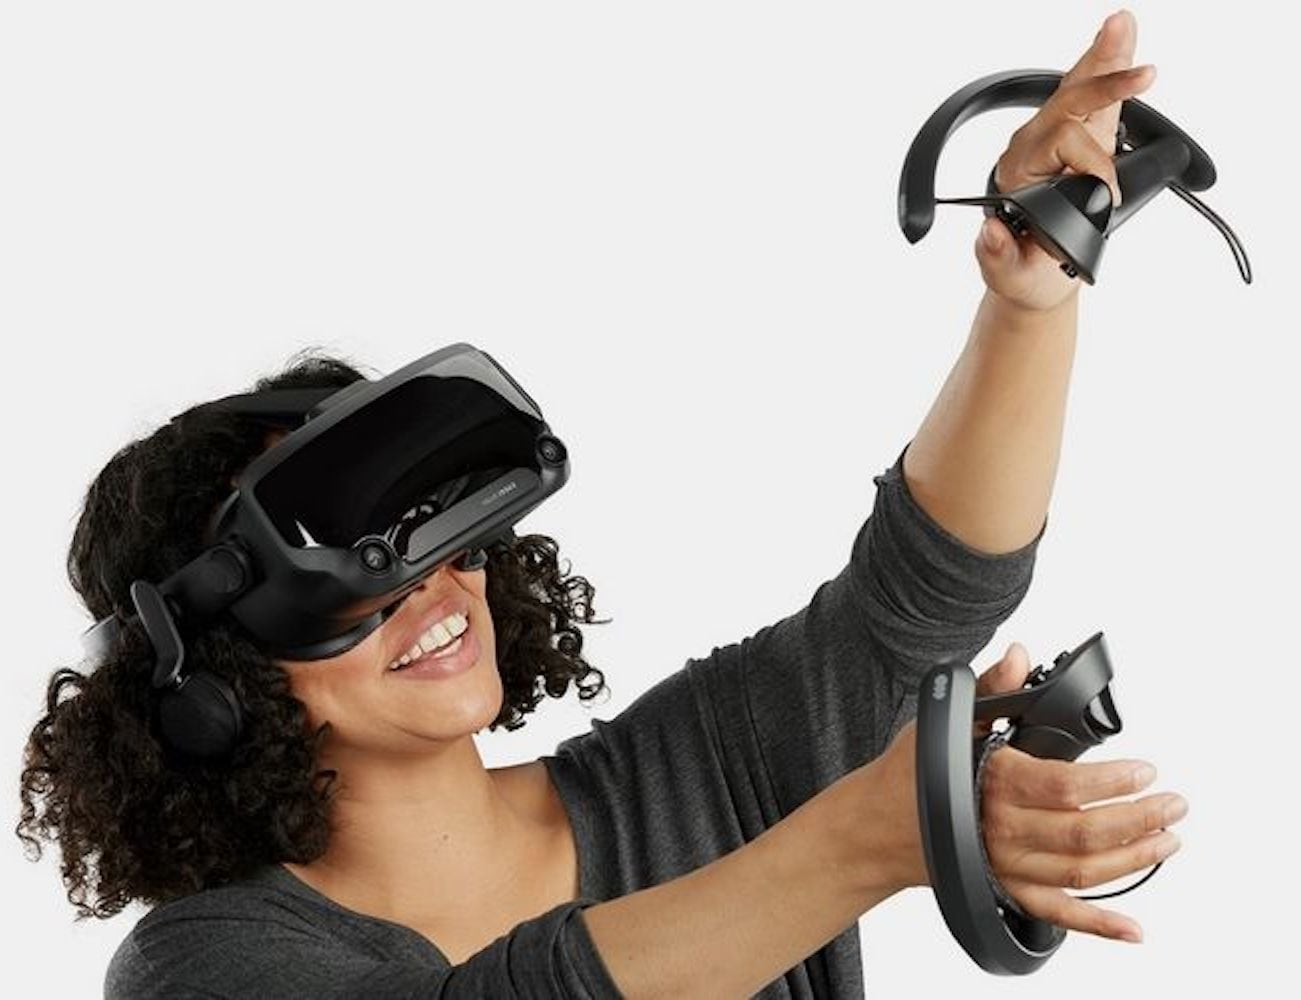 Valve Index VR Gaming Controller is designed to be worn not held